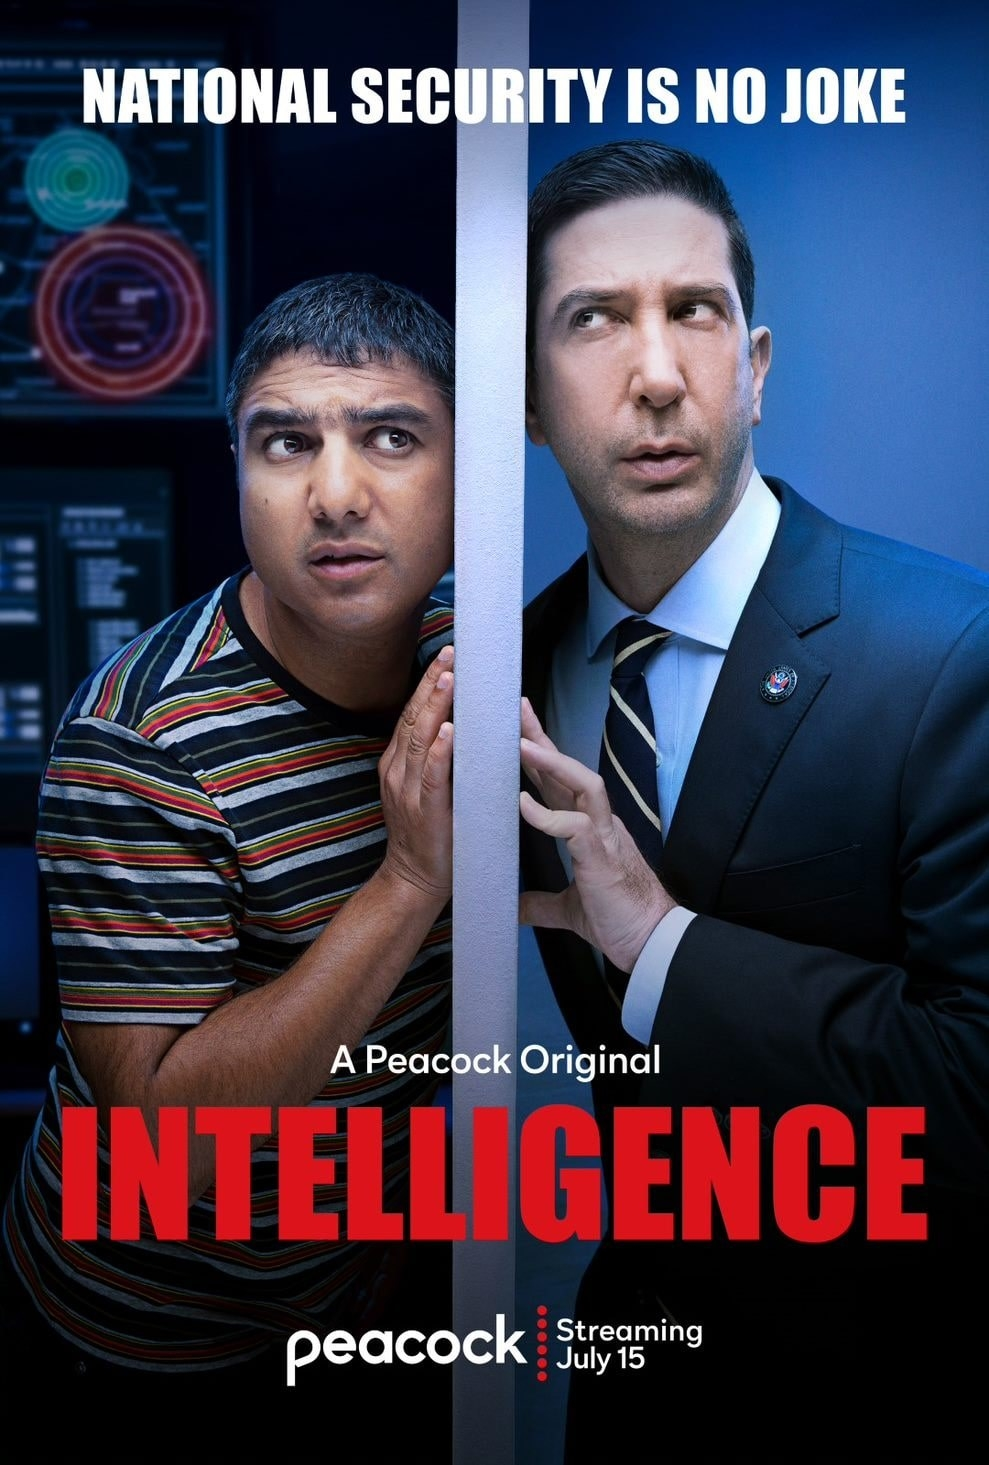 the poster for intelligence showing david schwimmer and Nick Mohammed leaning their ears against a wall